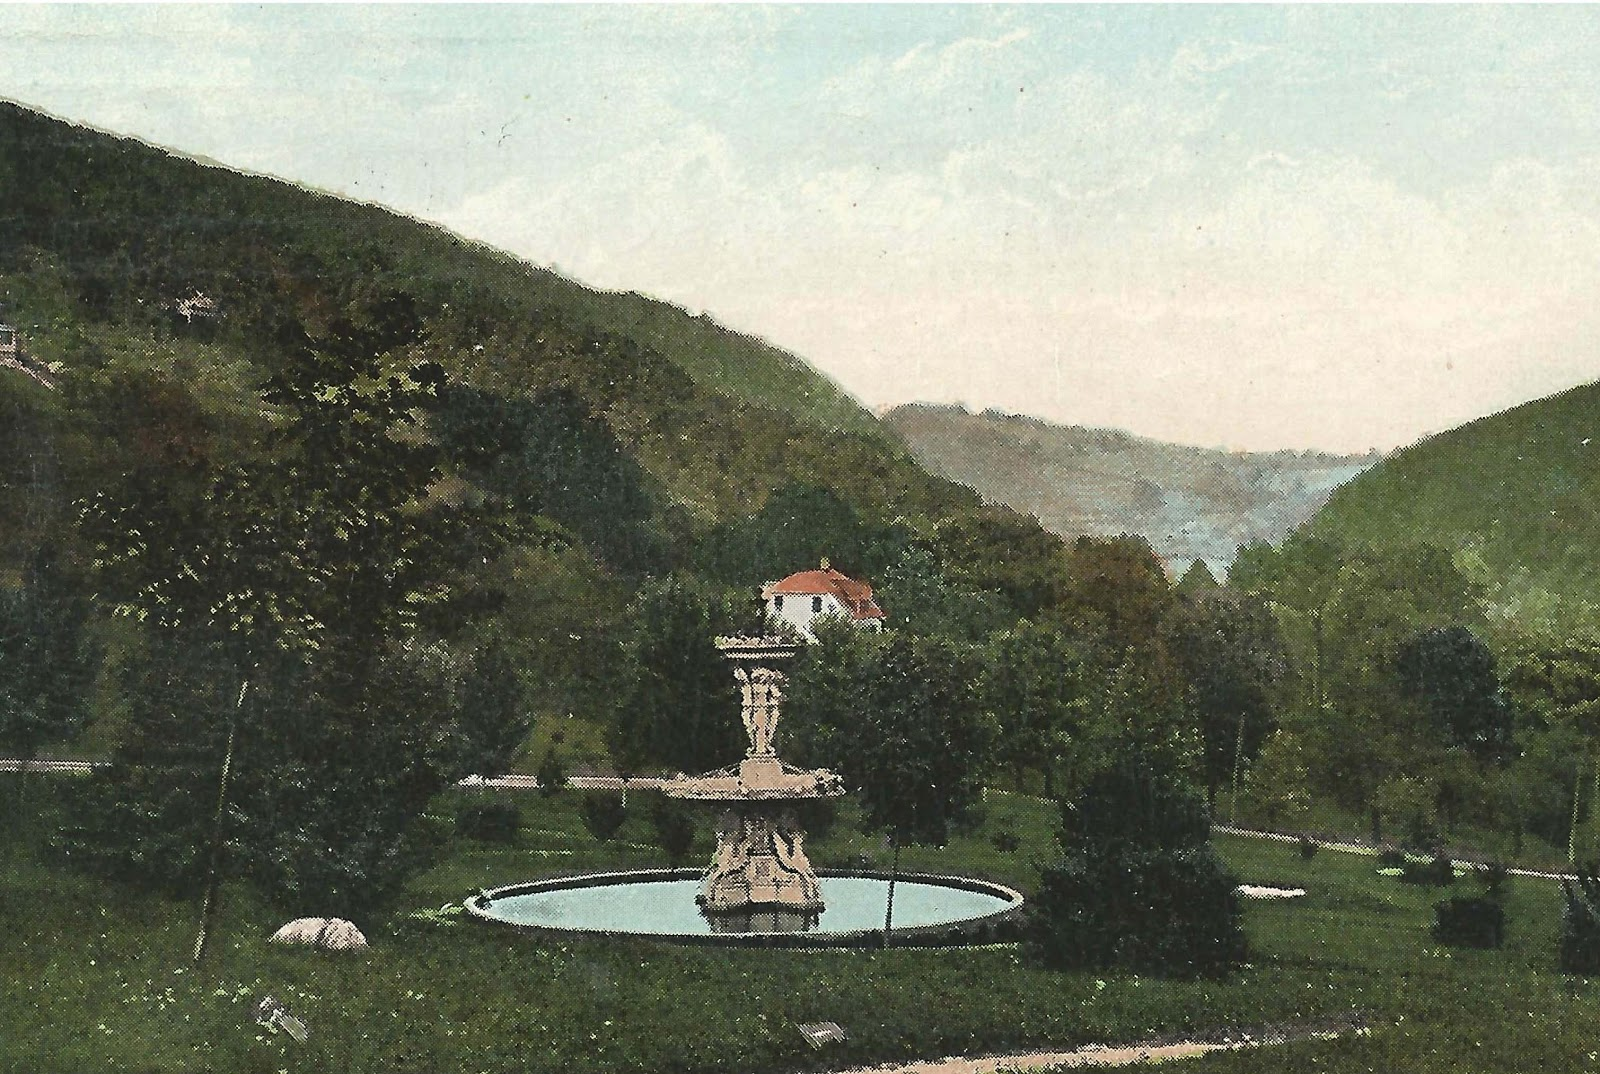 The Easton Eccentric Nevin Park to Finally Get Fountain